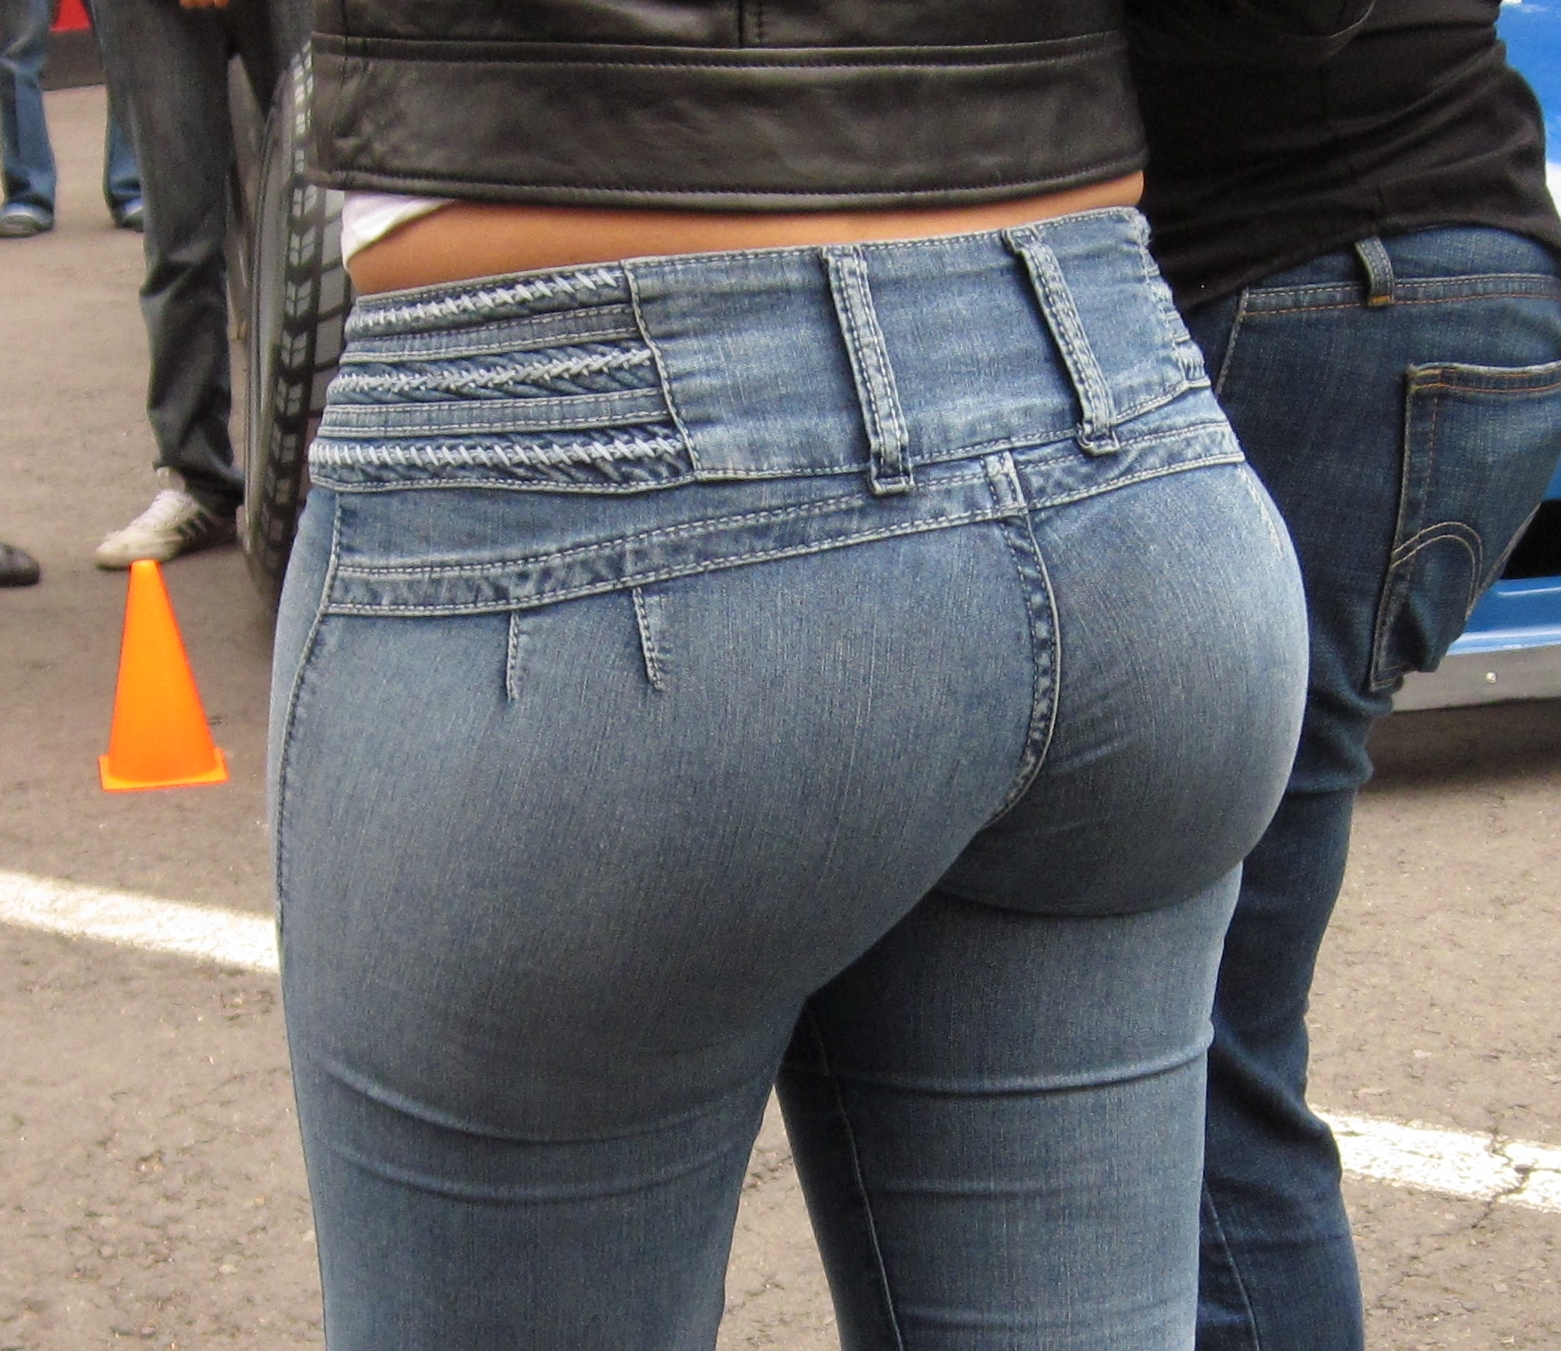 ass in tight jeans